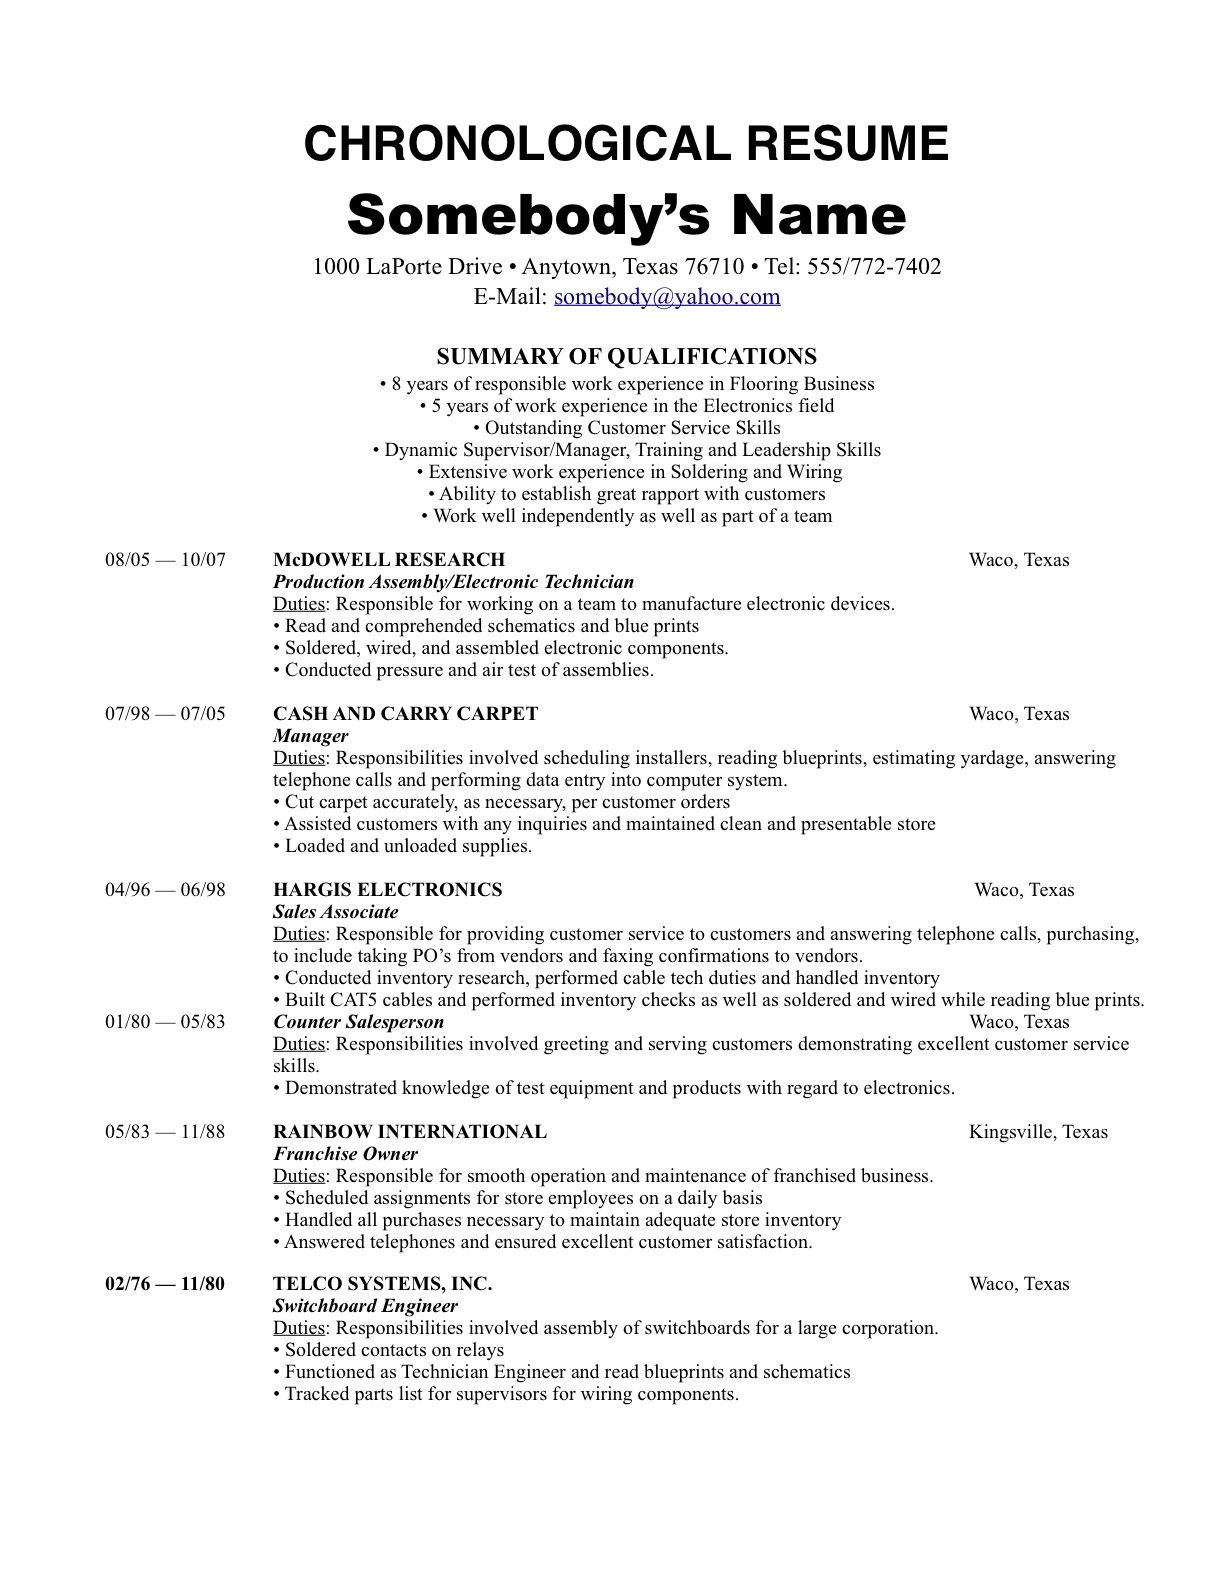 chronological order resume example dc0364f86 the most reverse chronological resume example - Examples Of Chronological Resumes